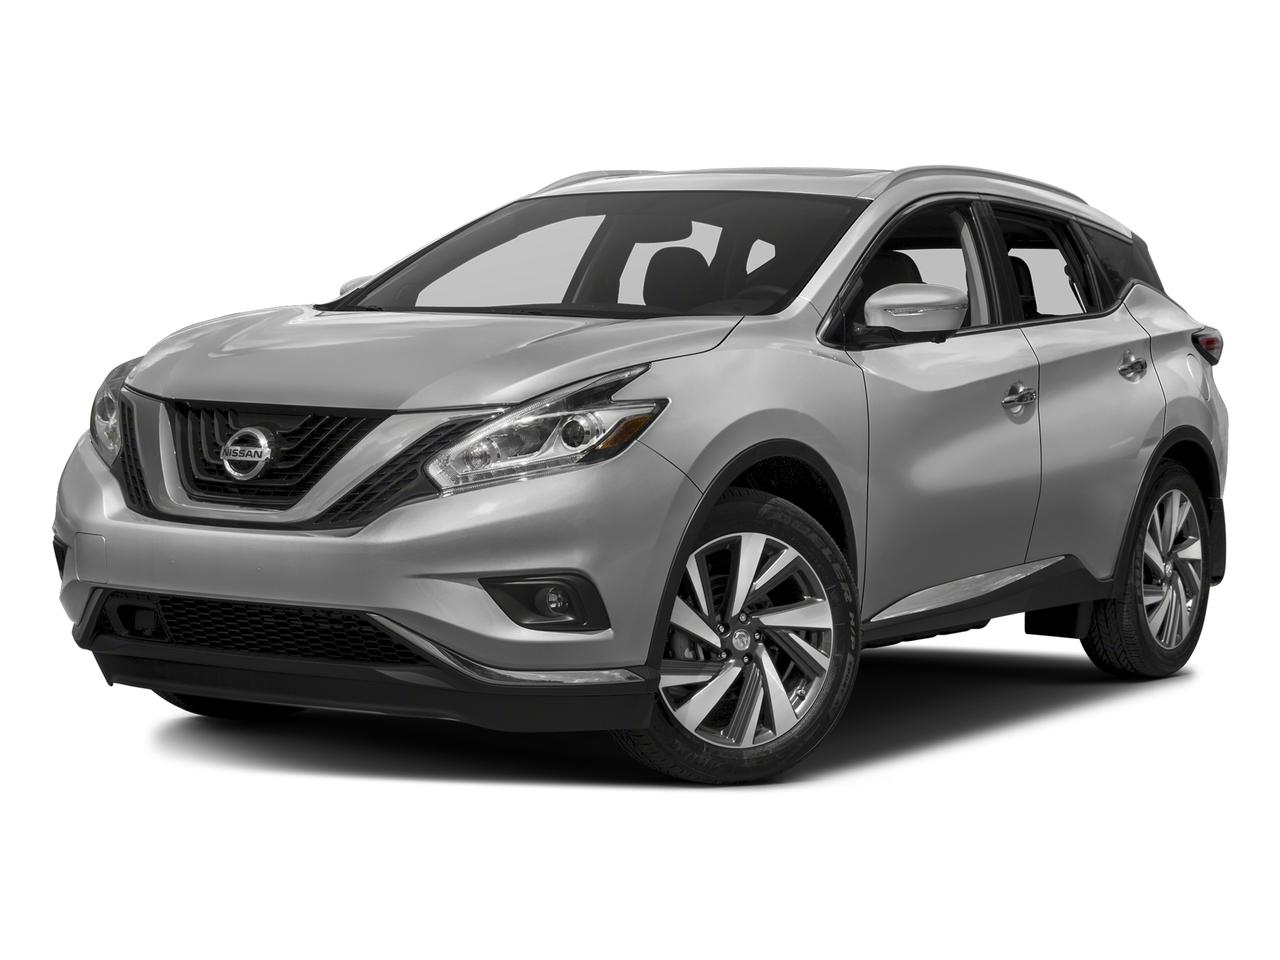 2017 Nissan Murano Vehicle Photo in Jasper, IN 47546